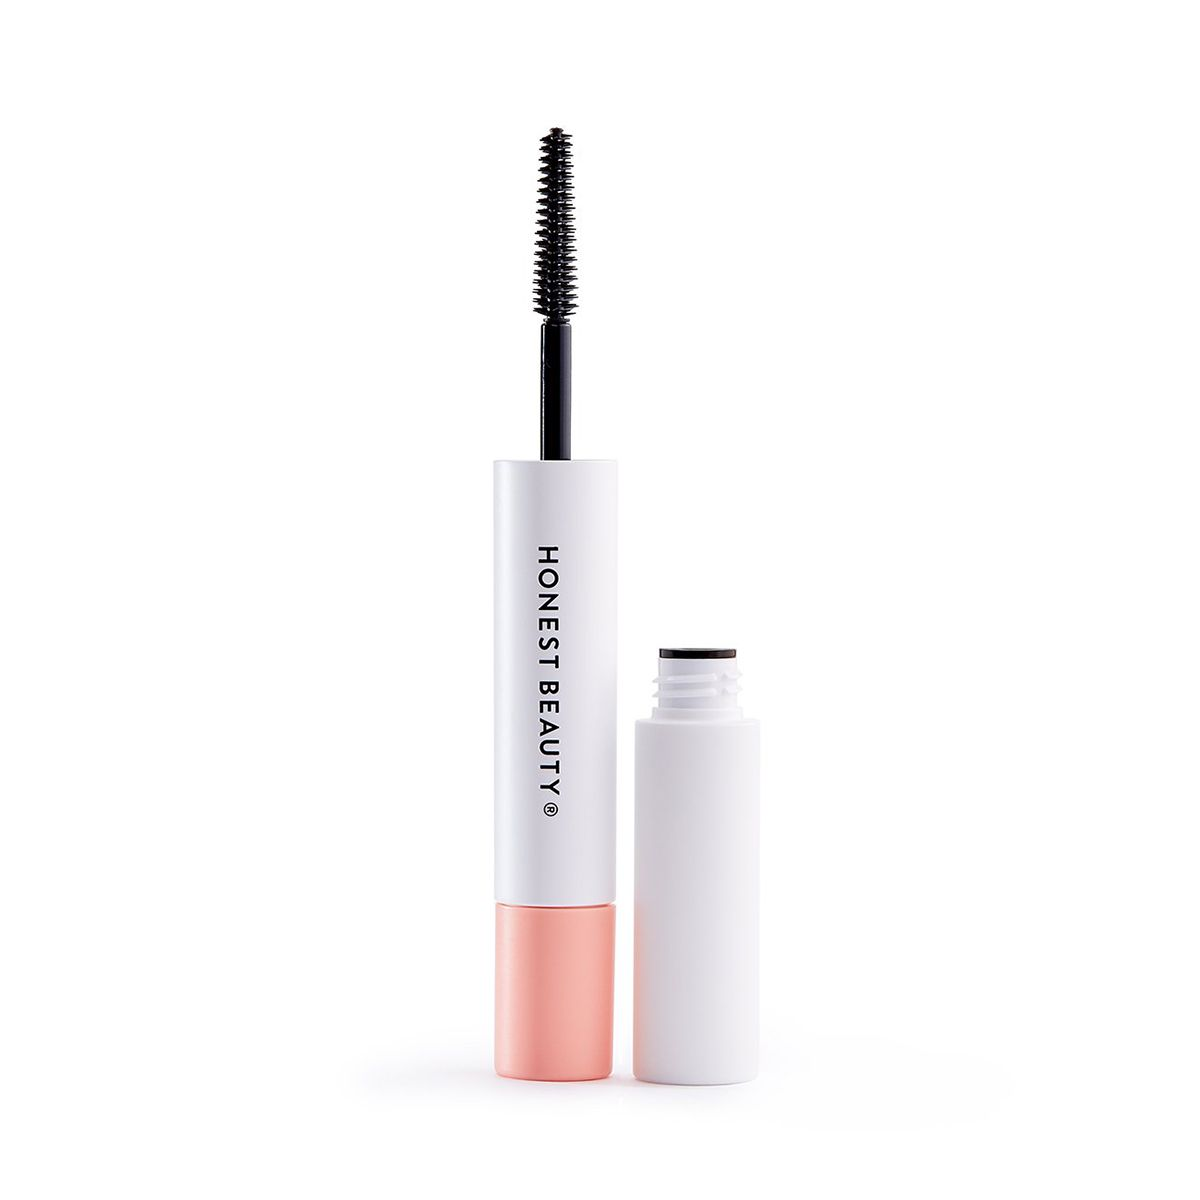 edba39d93e2 There's nothing we love more than a multi-talented beauty product, and this  double-ended mascara and primer situation from Honest Company satisfies the  ...